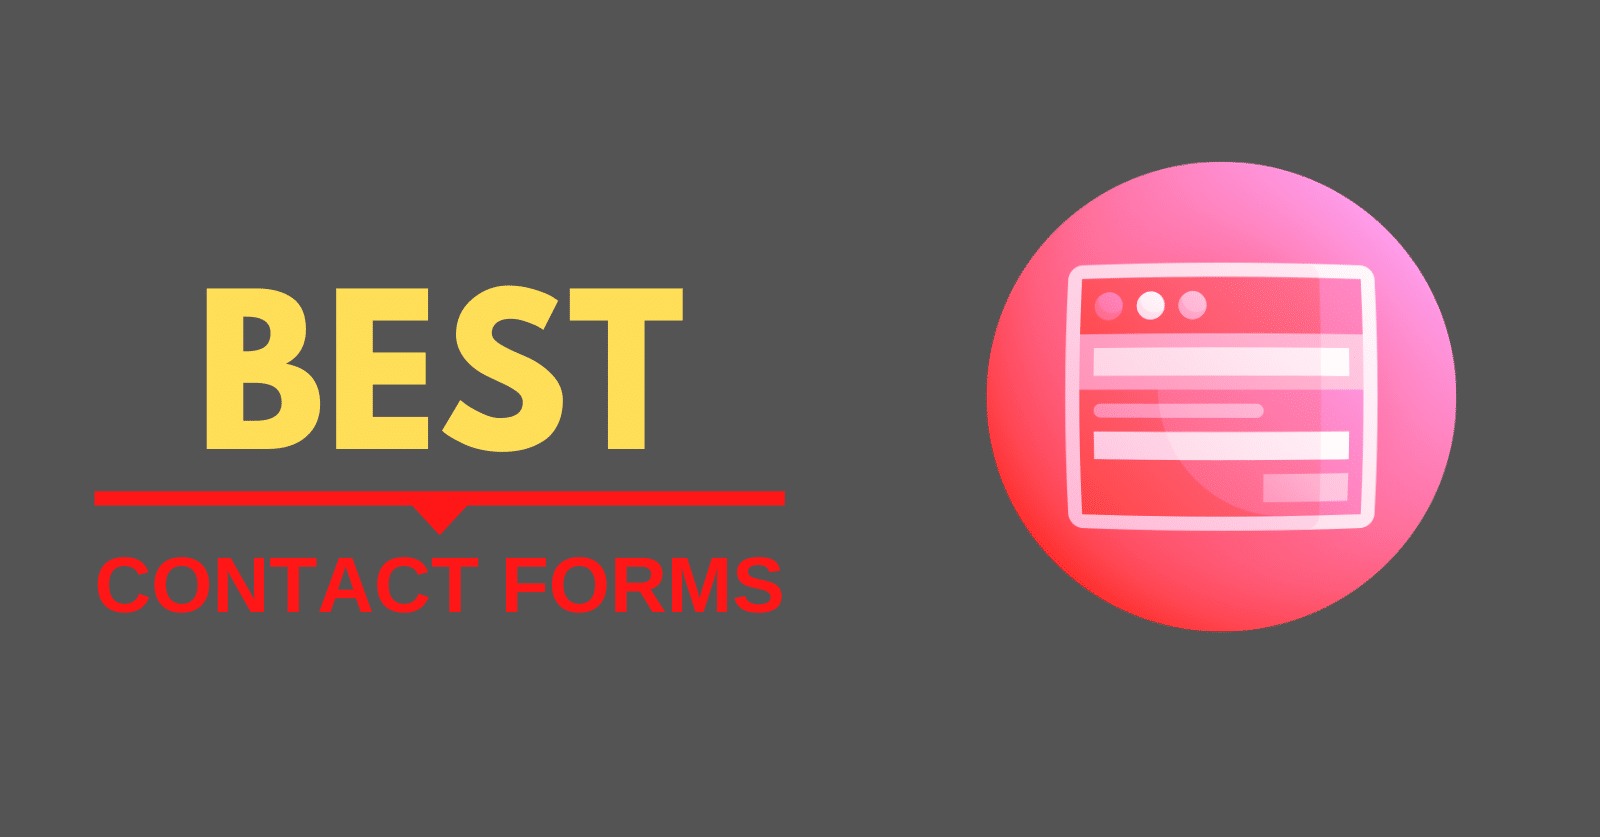 Best Contact Forms